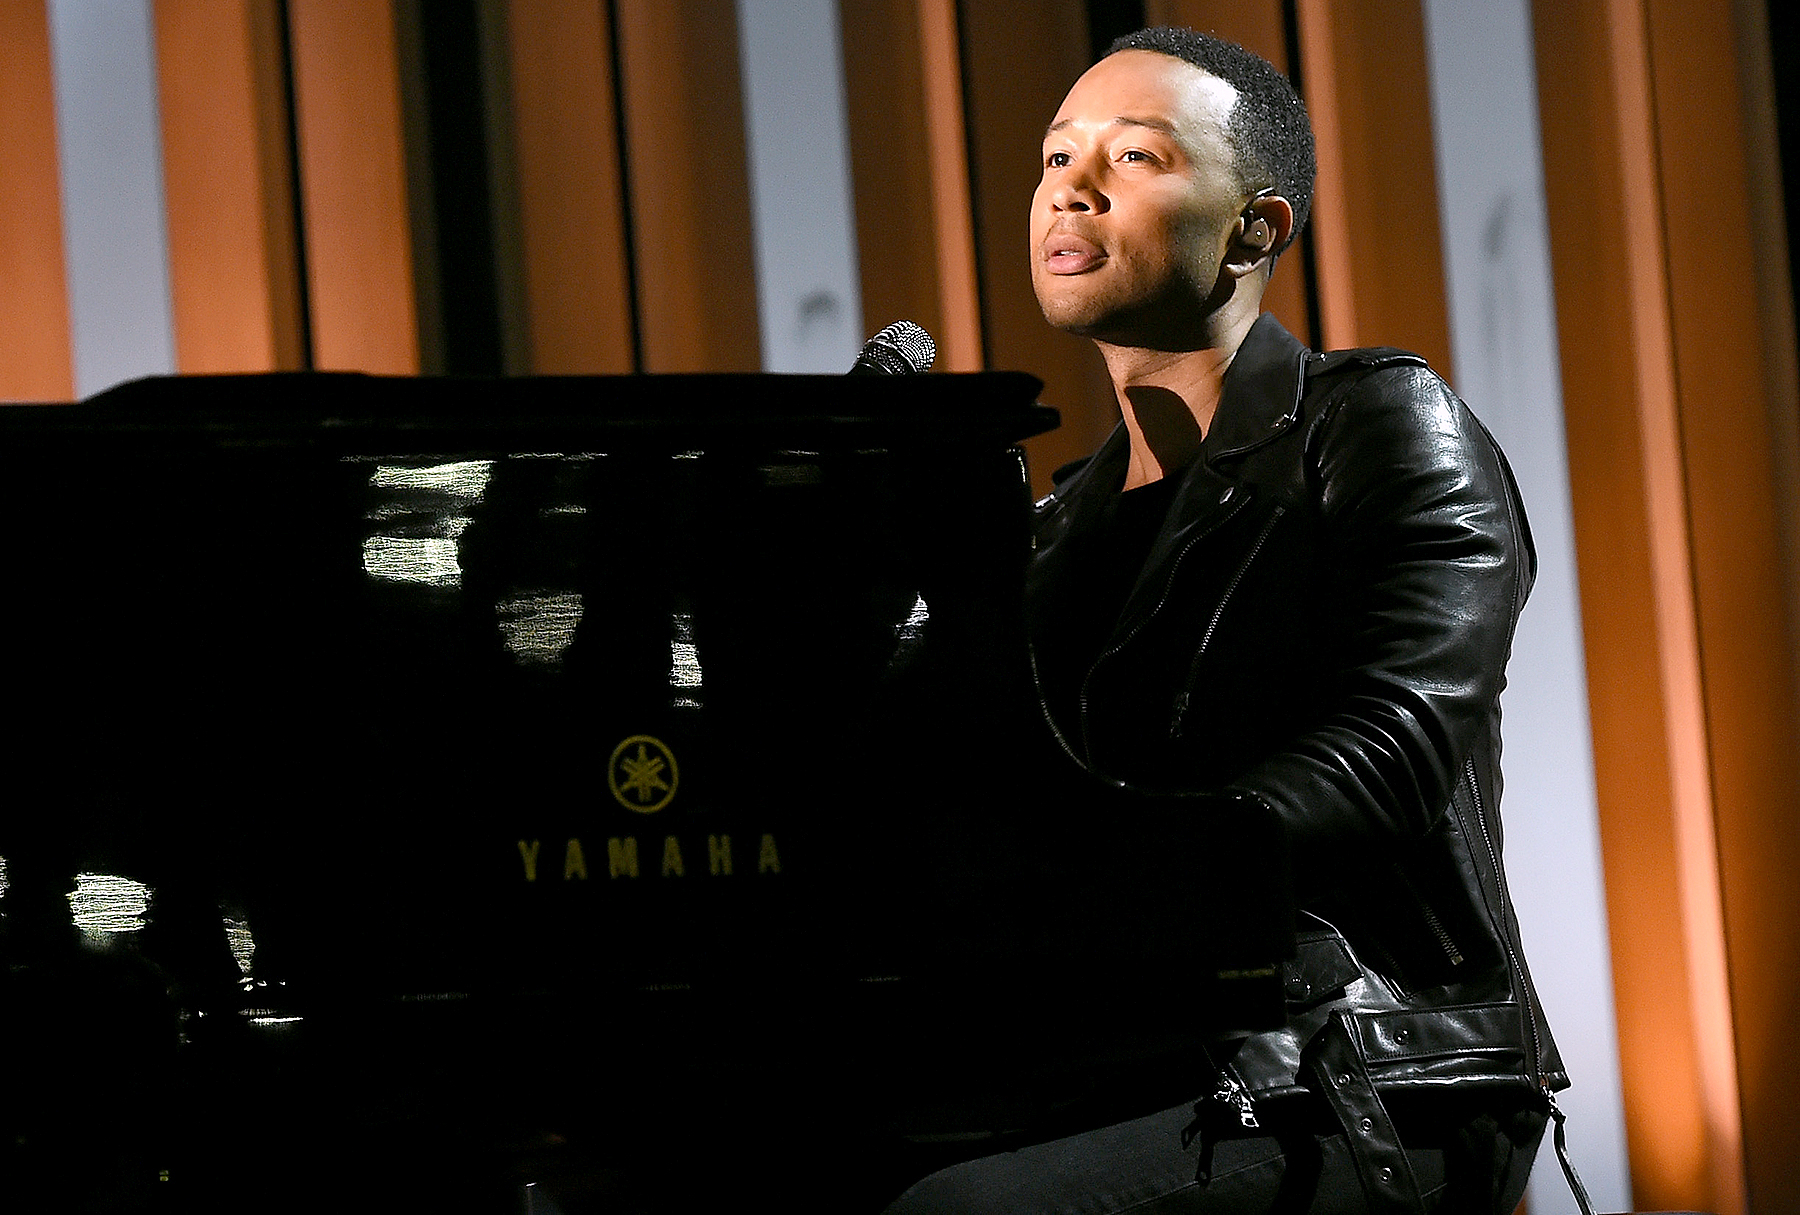 John Legend performs at the 2017 Billboard Music Awards at T-Mobile Arena in Las Vegas on May 21, 2017.